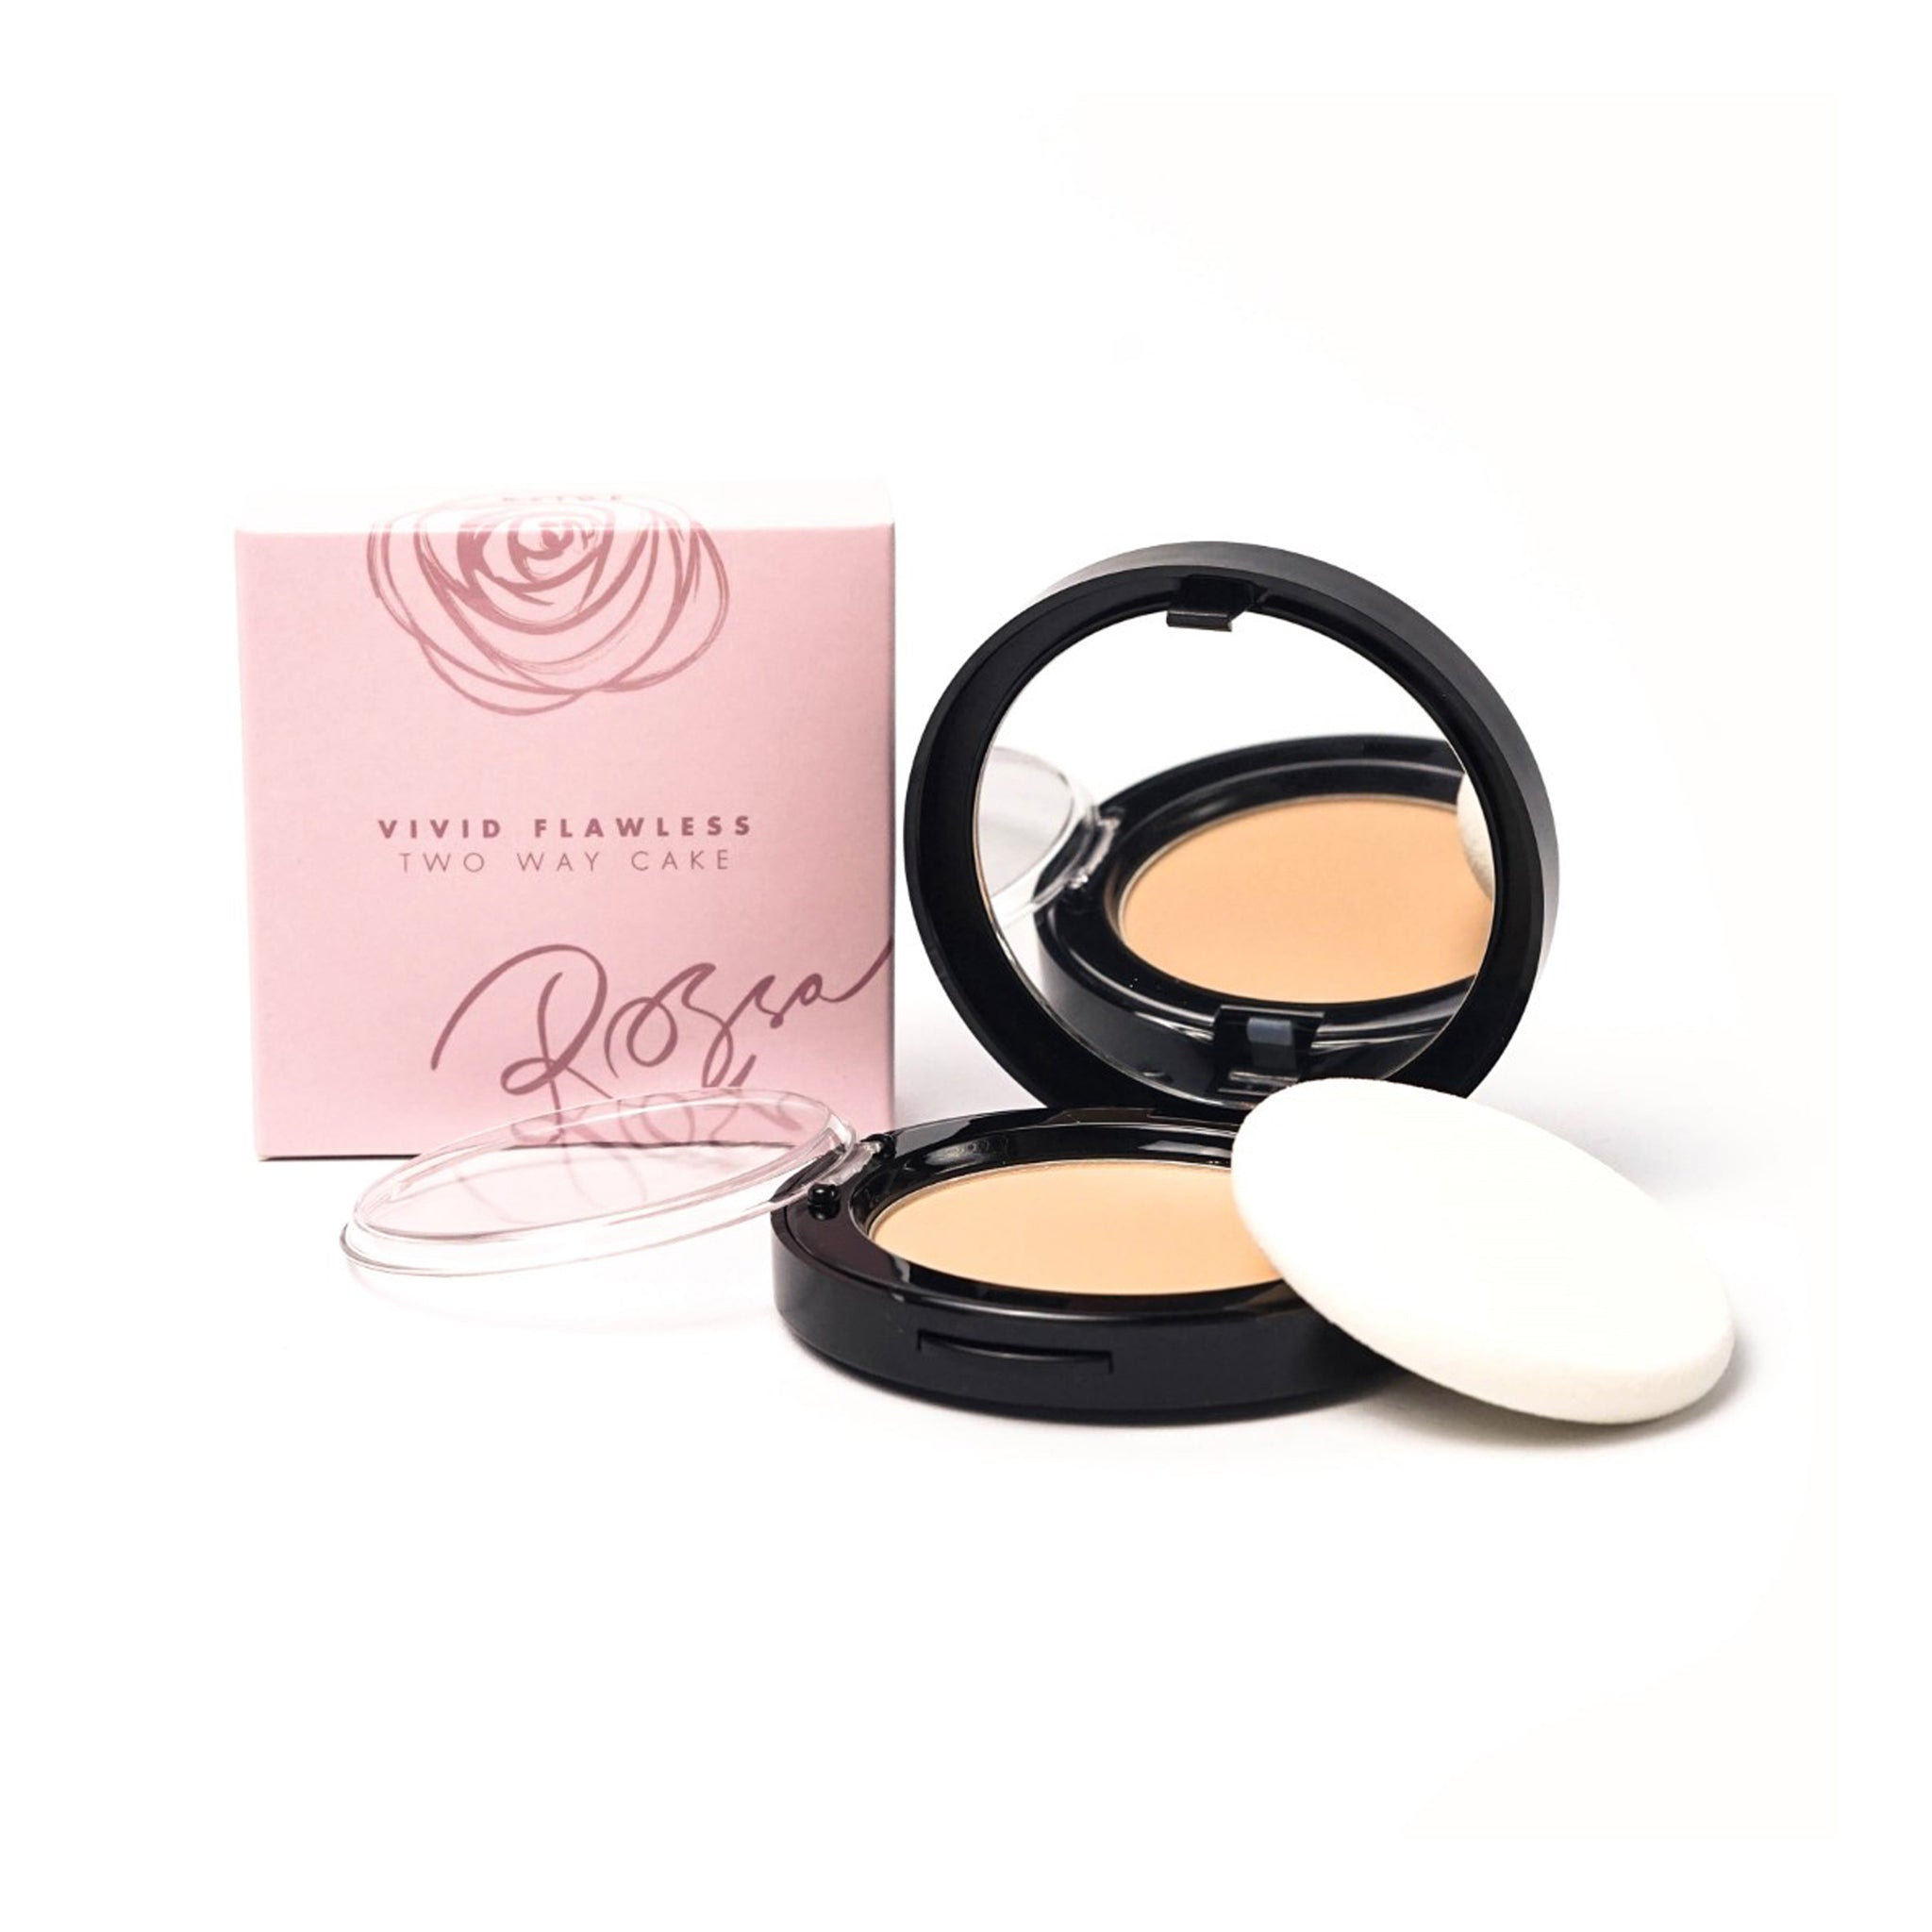 Rossa Beauty Vivid Flawless Two Way Cake - Beige